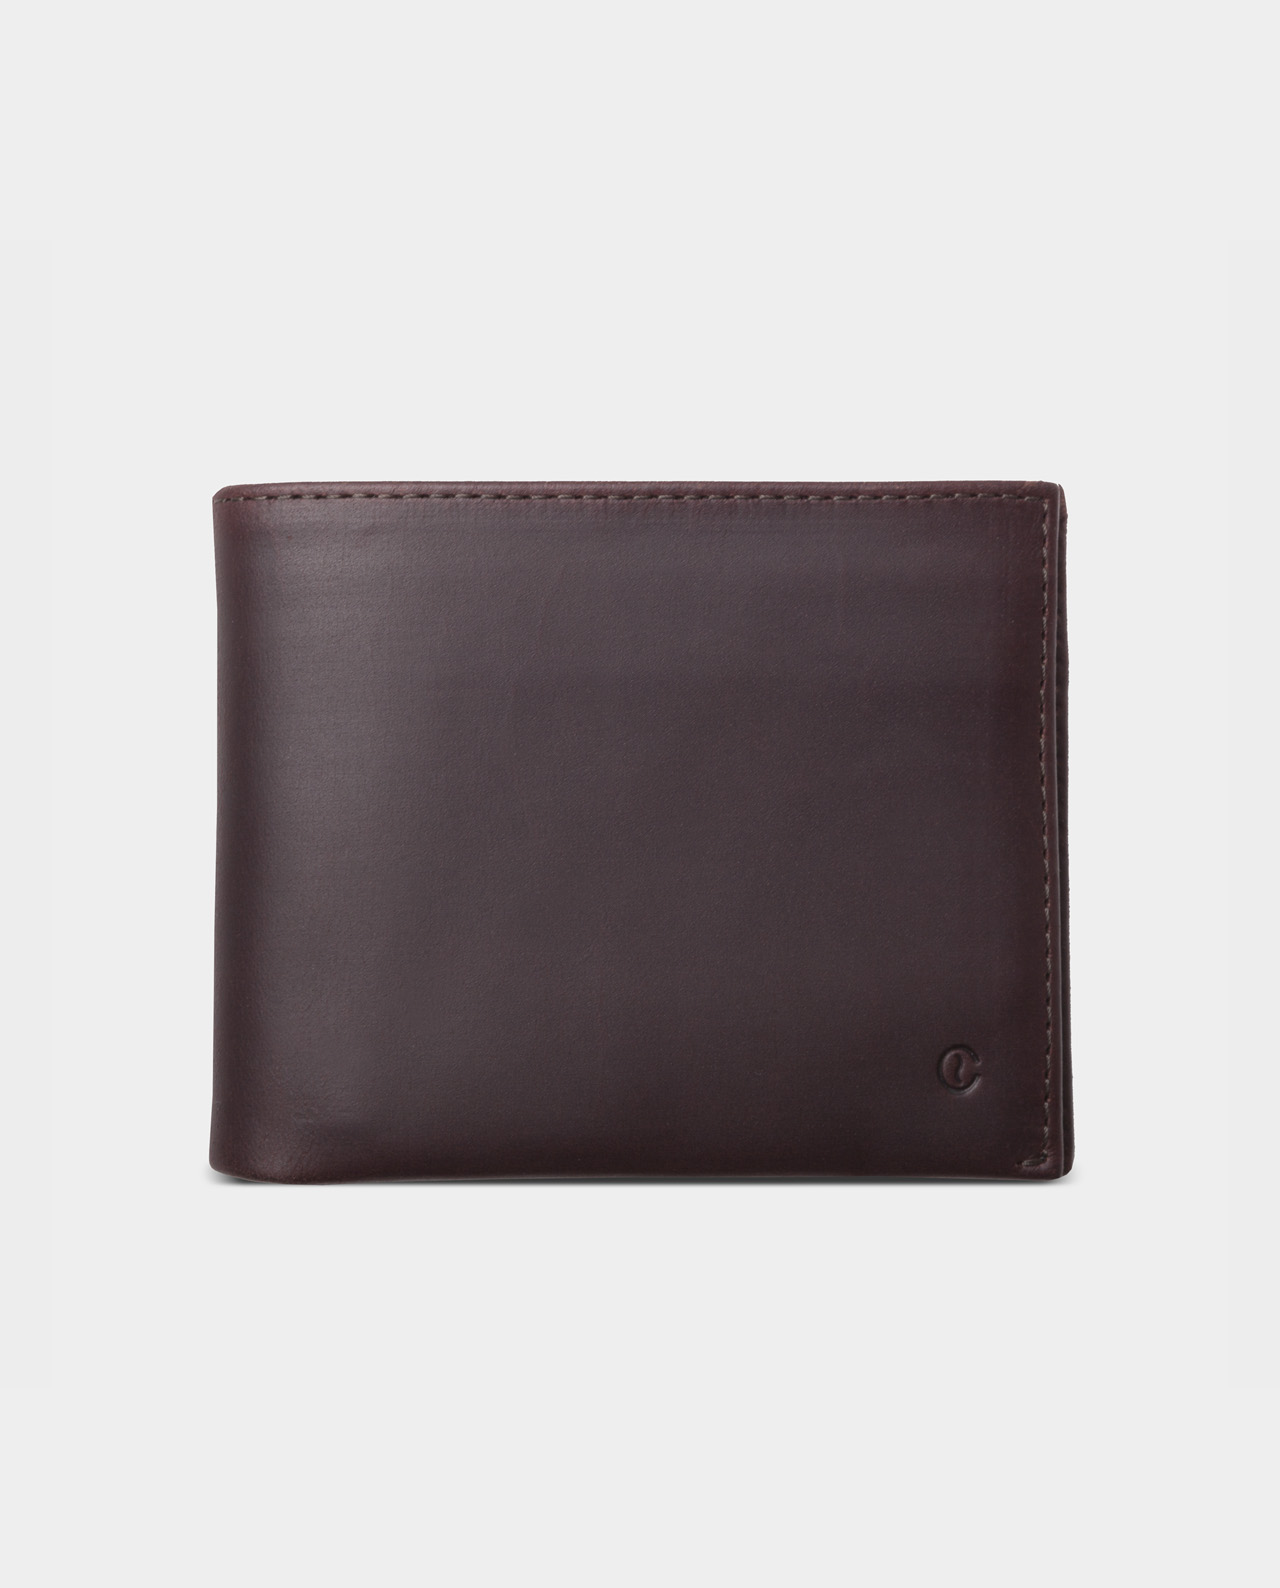 billfold wallet black for coins and bills